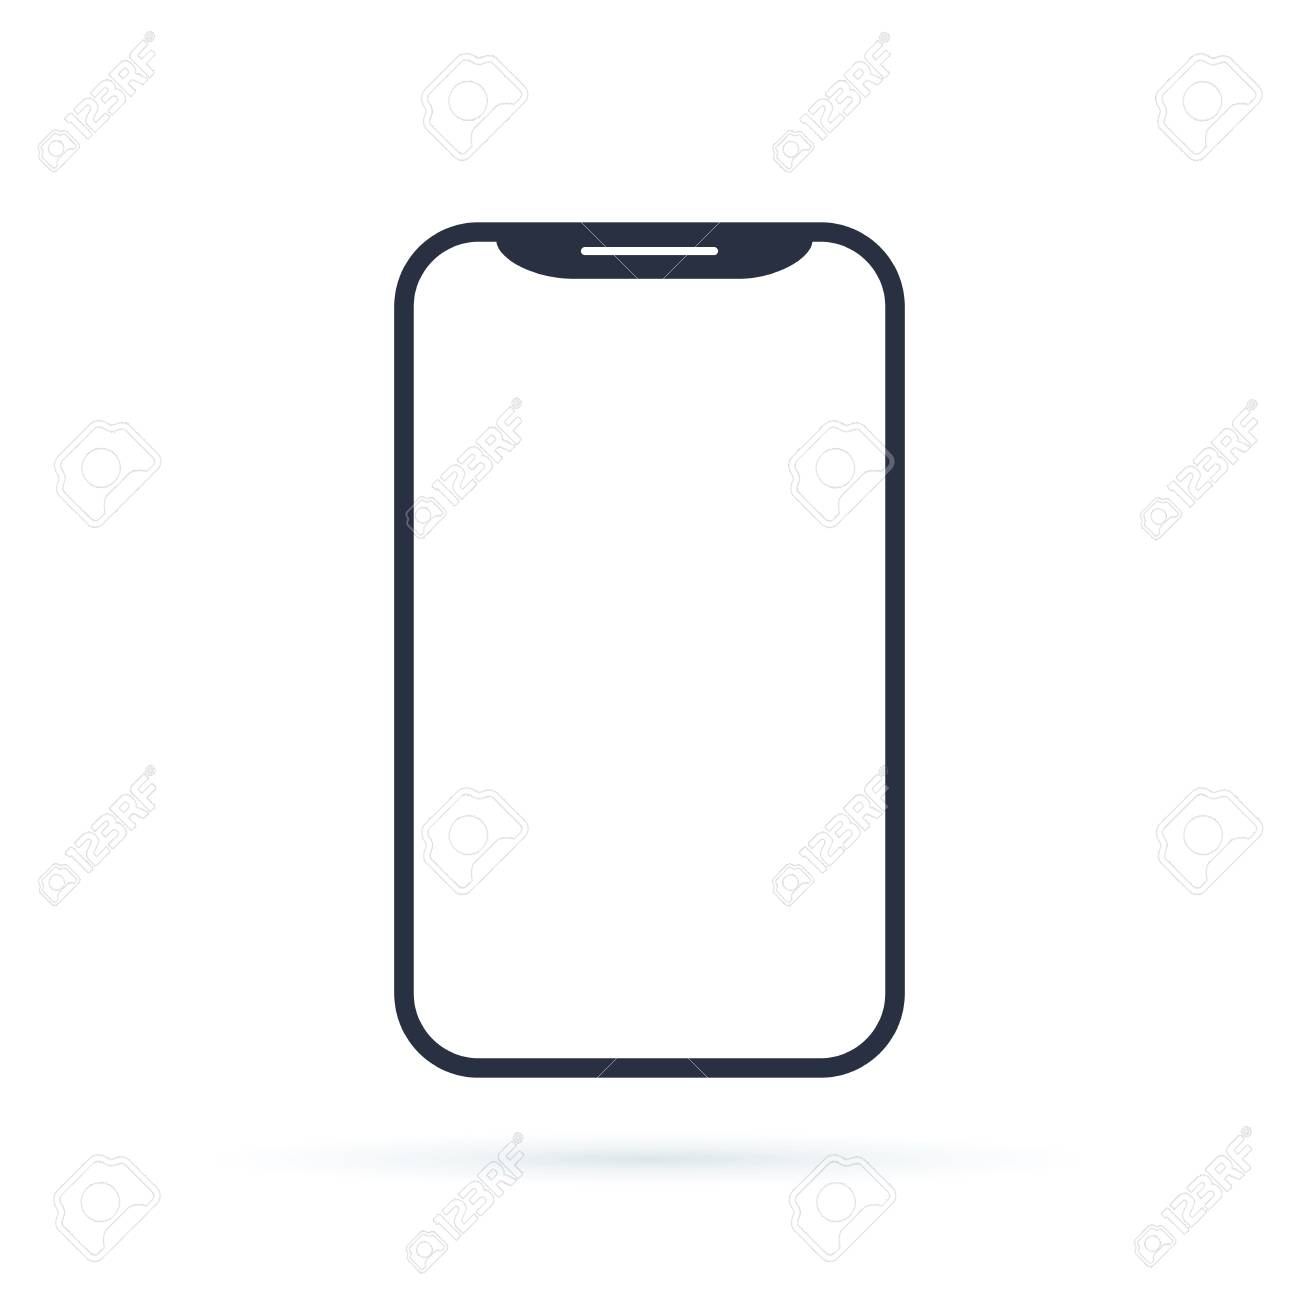 Mobile phone smartphone device gadget in line style on the white background. telephone icon. cellphone icon - 126506091